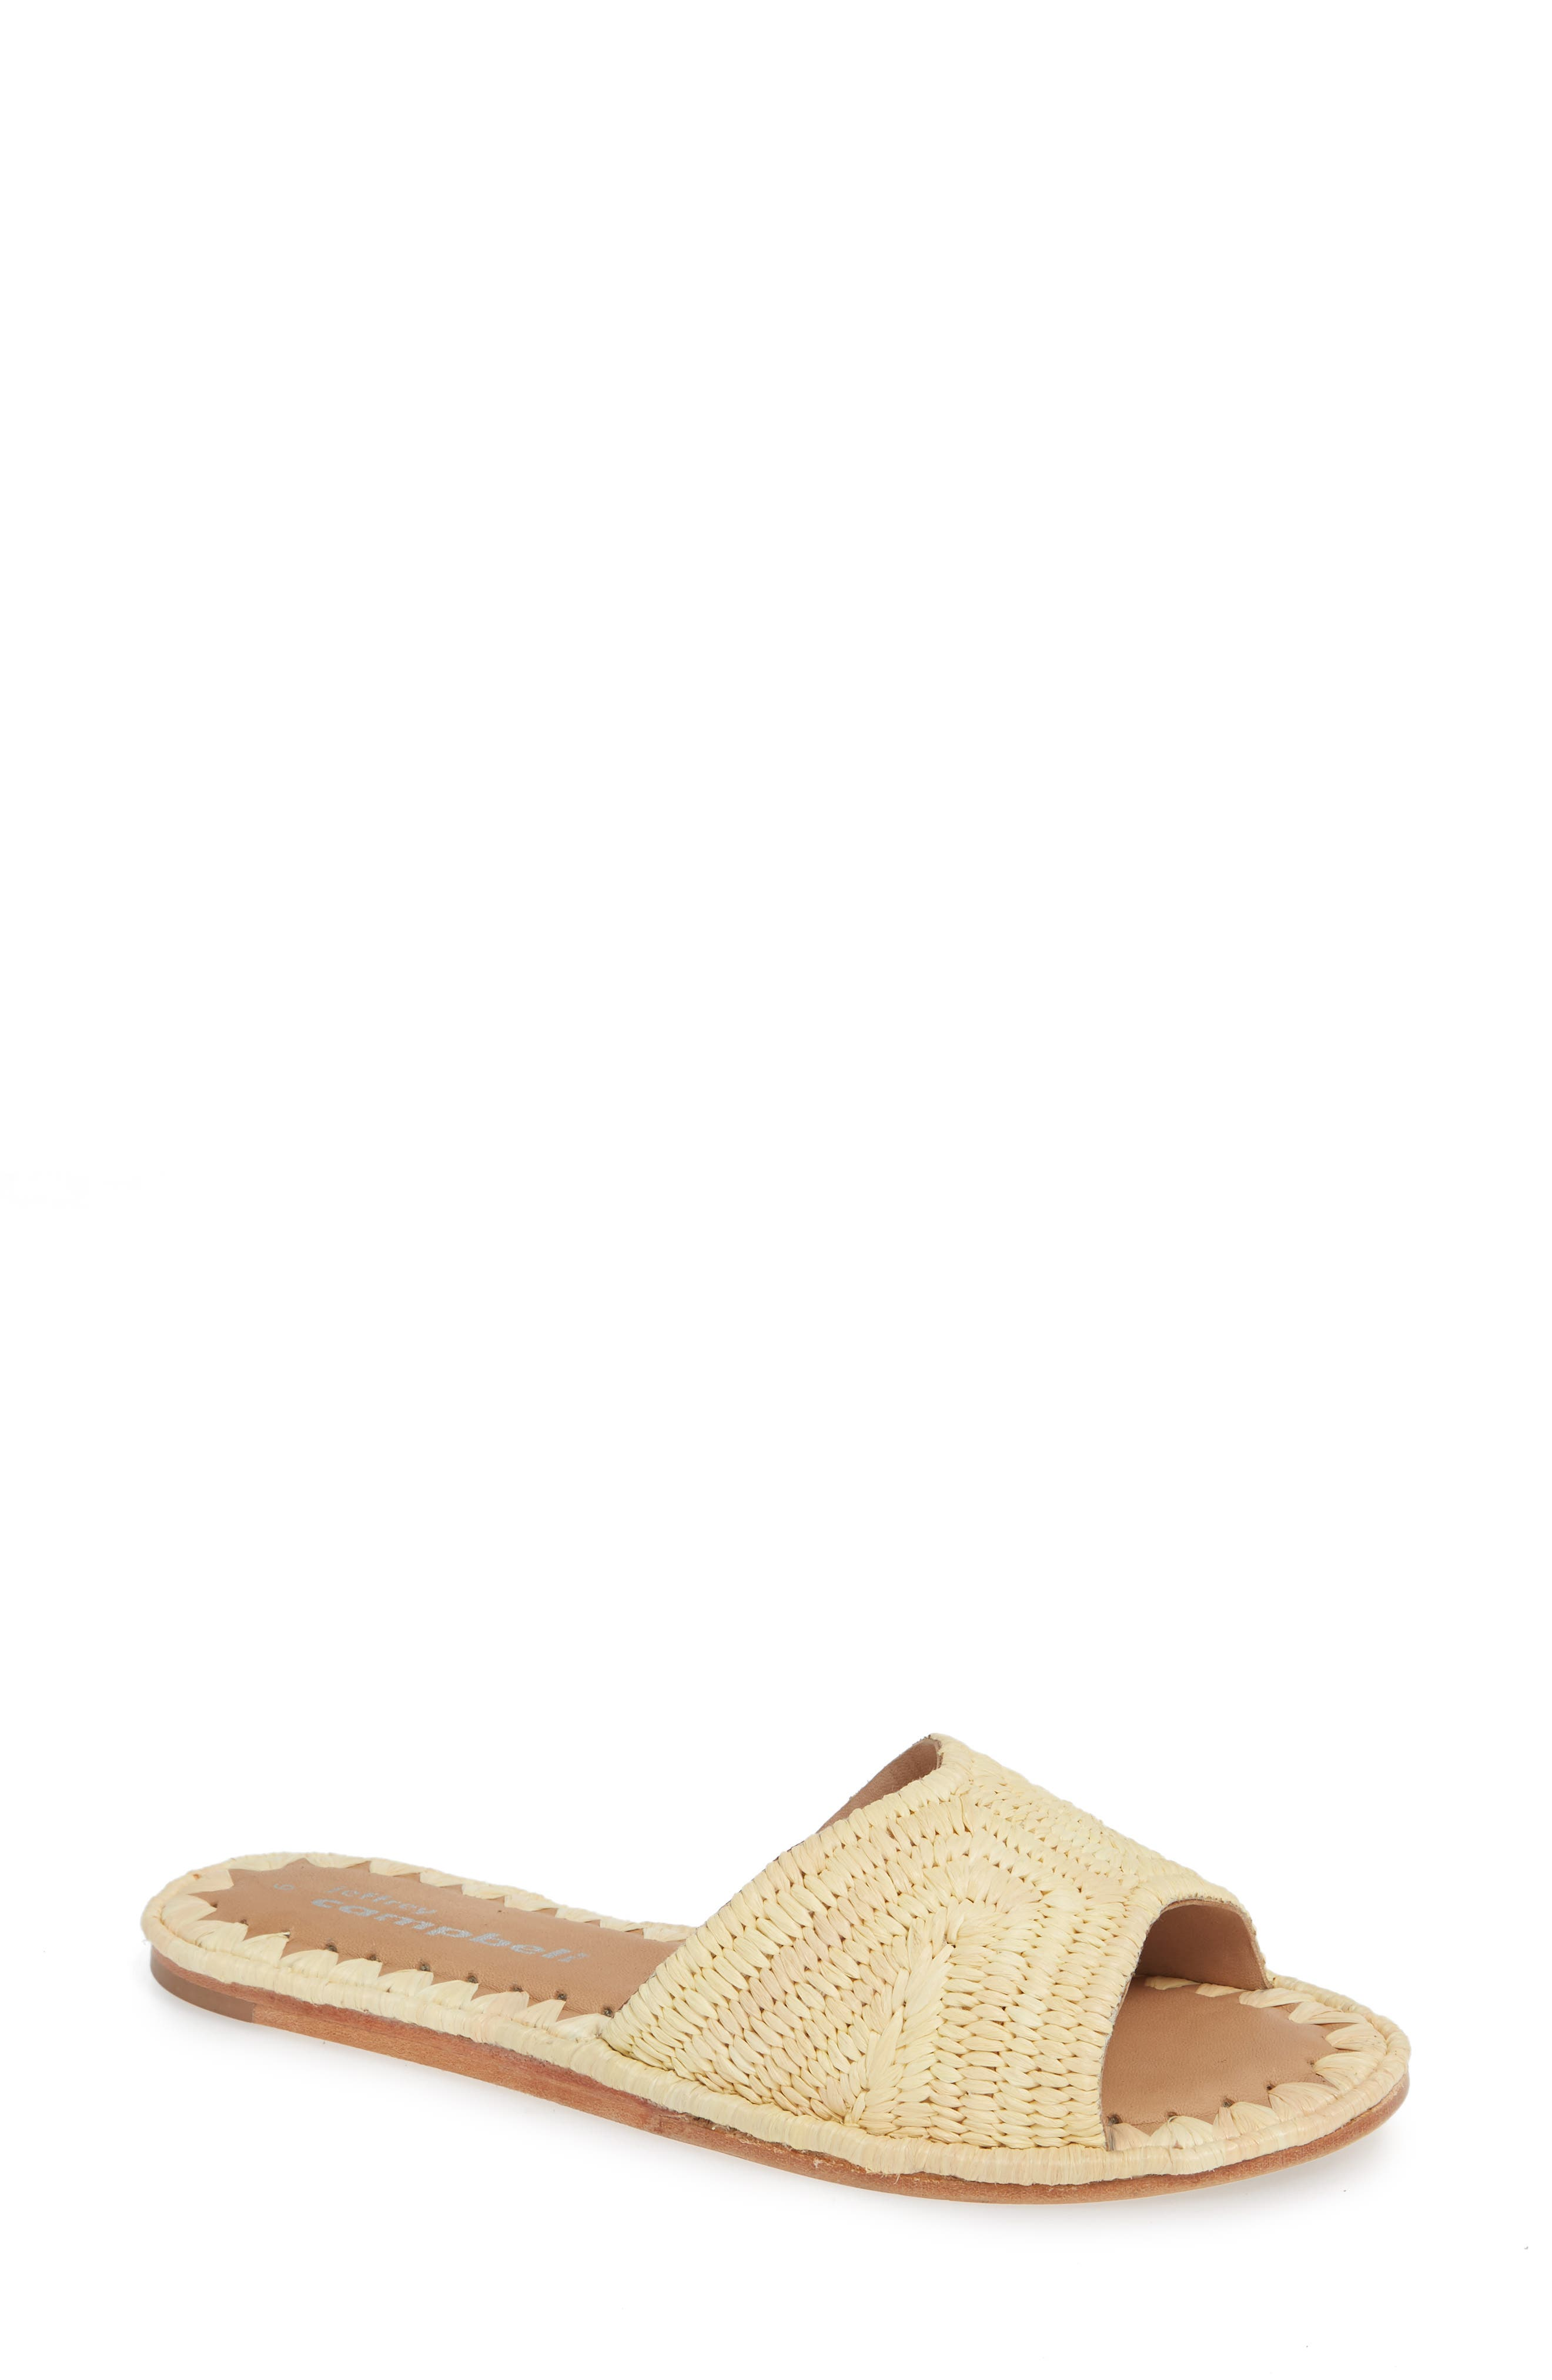 Dane Raffia Slide Sandal, Main, color, NATURAL RAFFIA